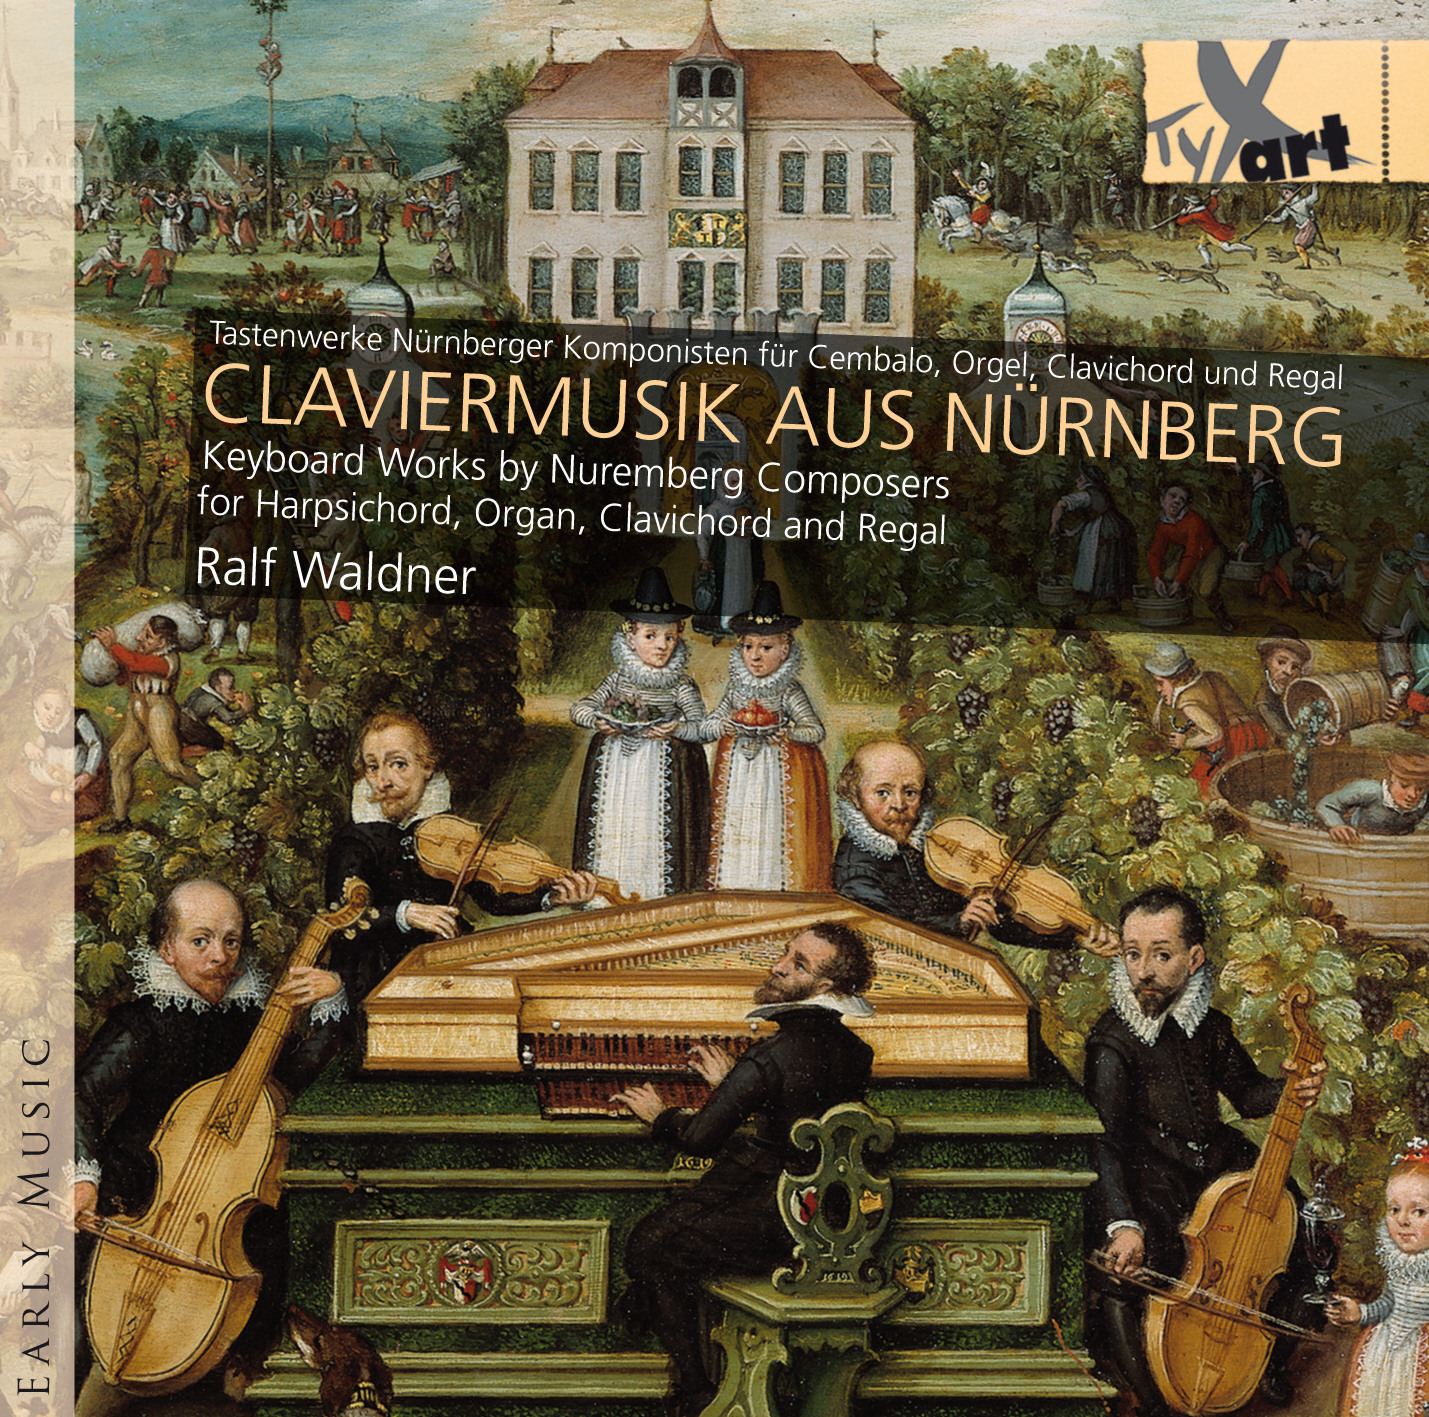 CLAVIER MUSIC FROM NUREMBERG - Ralf Waldner, Harpsichord/Organ/Clavichord/Regal